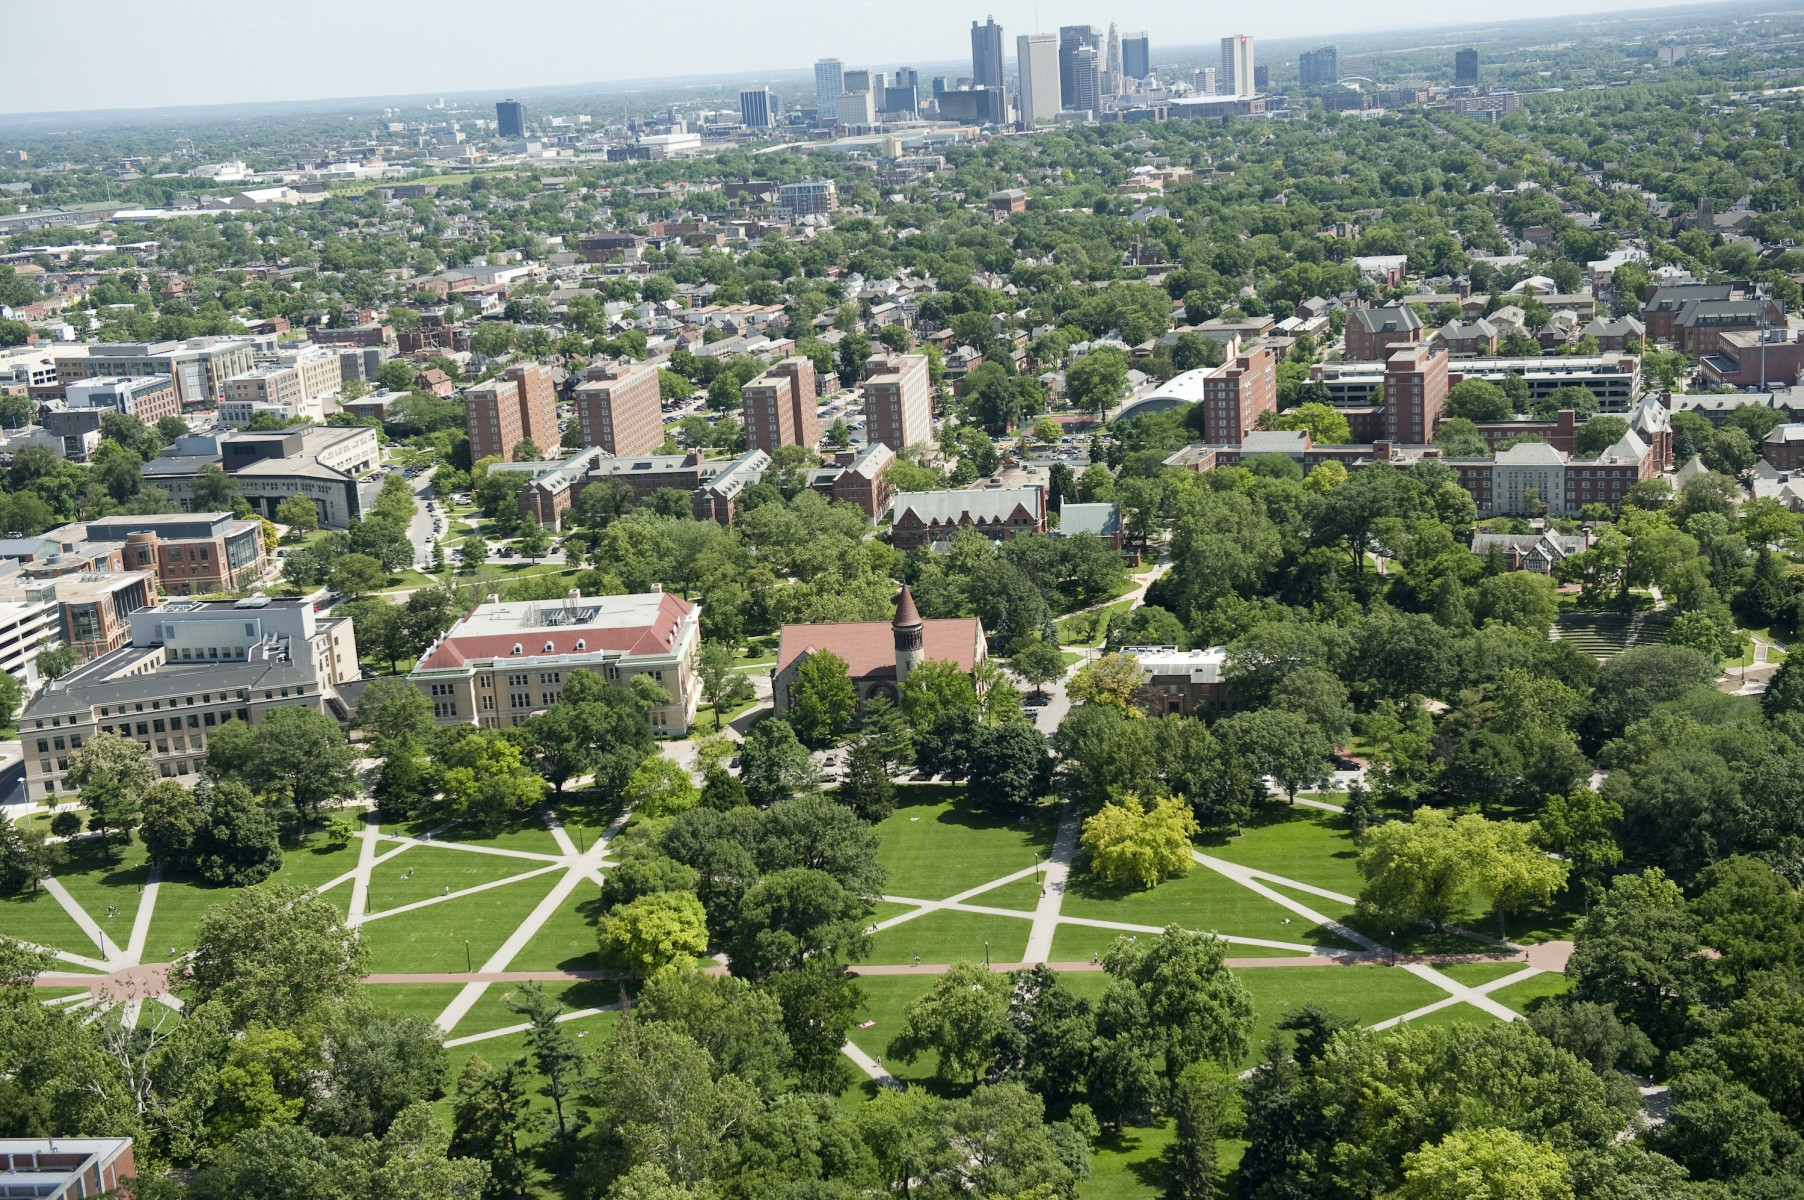 Aerial view of the Oval looking south toward Downtown Columbus